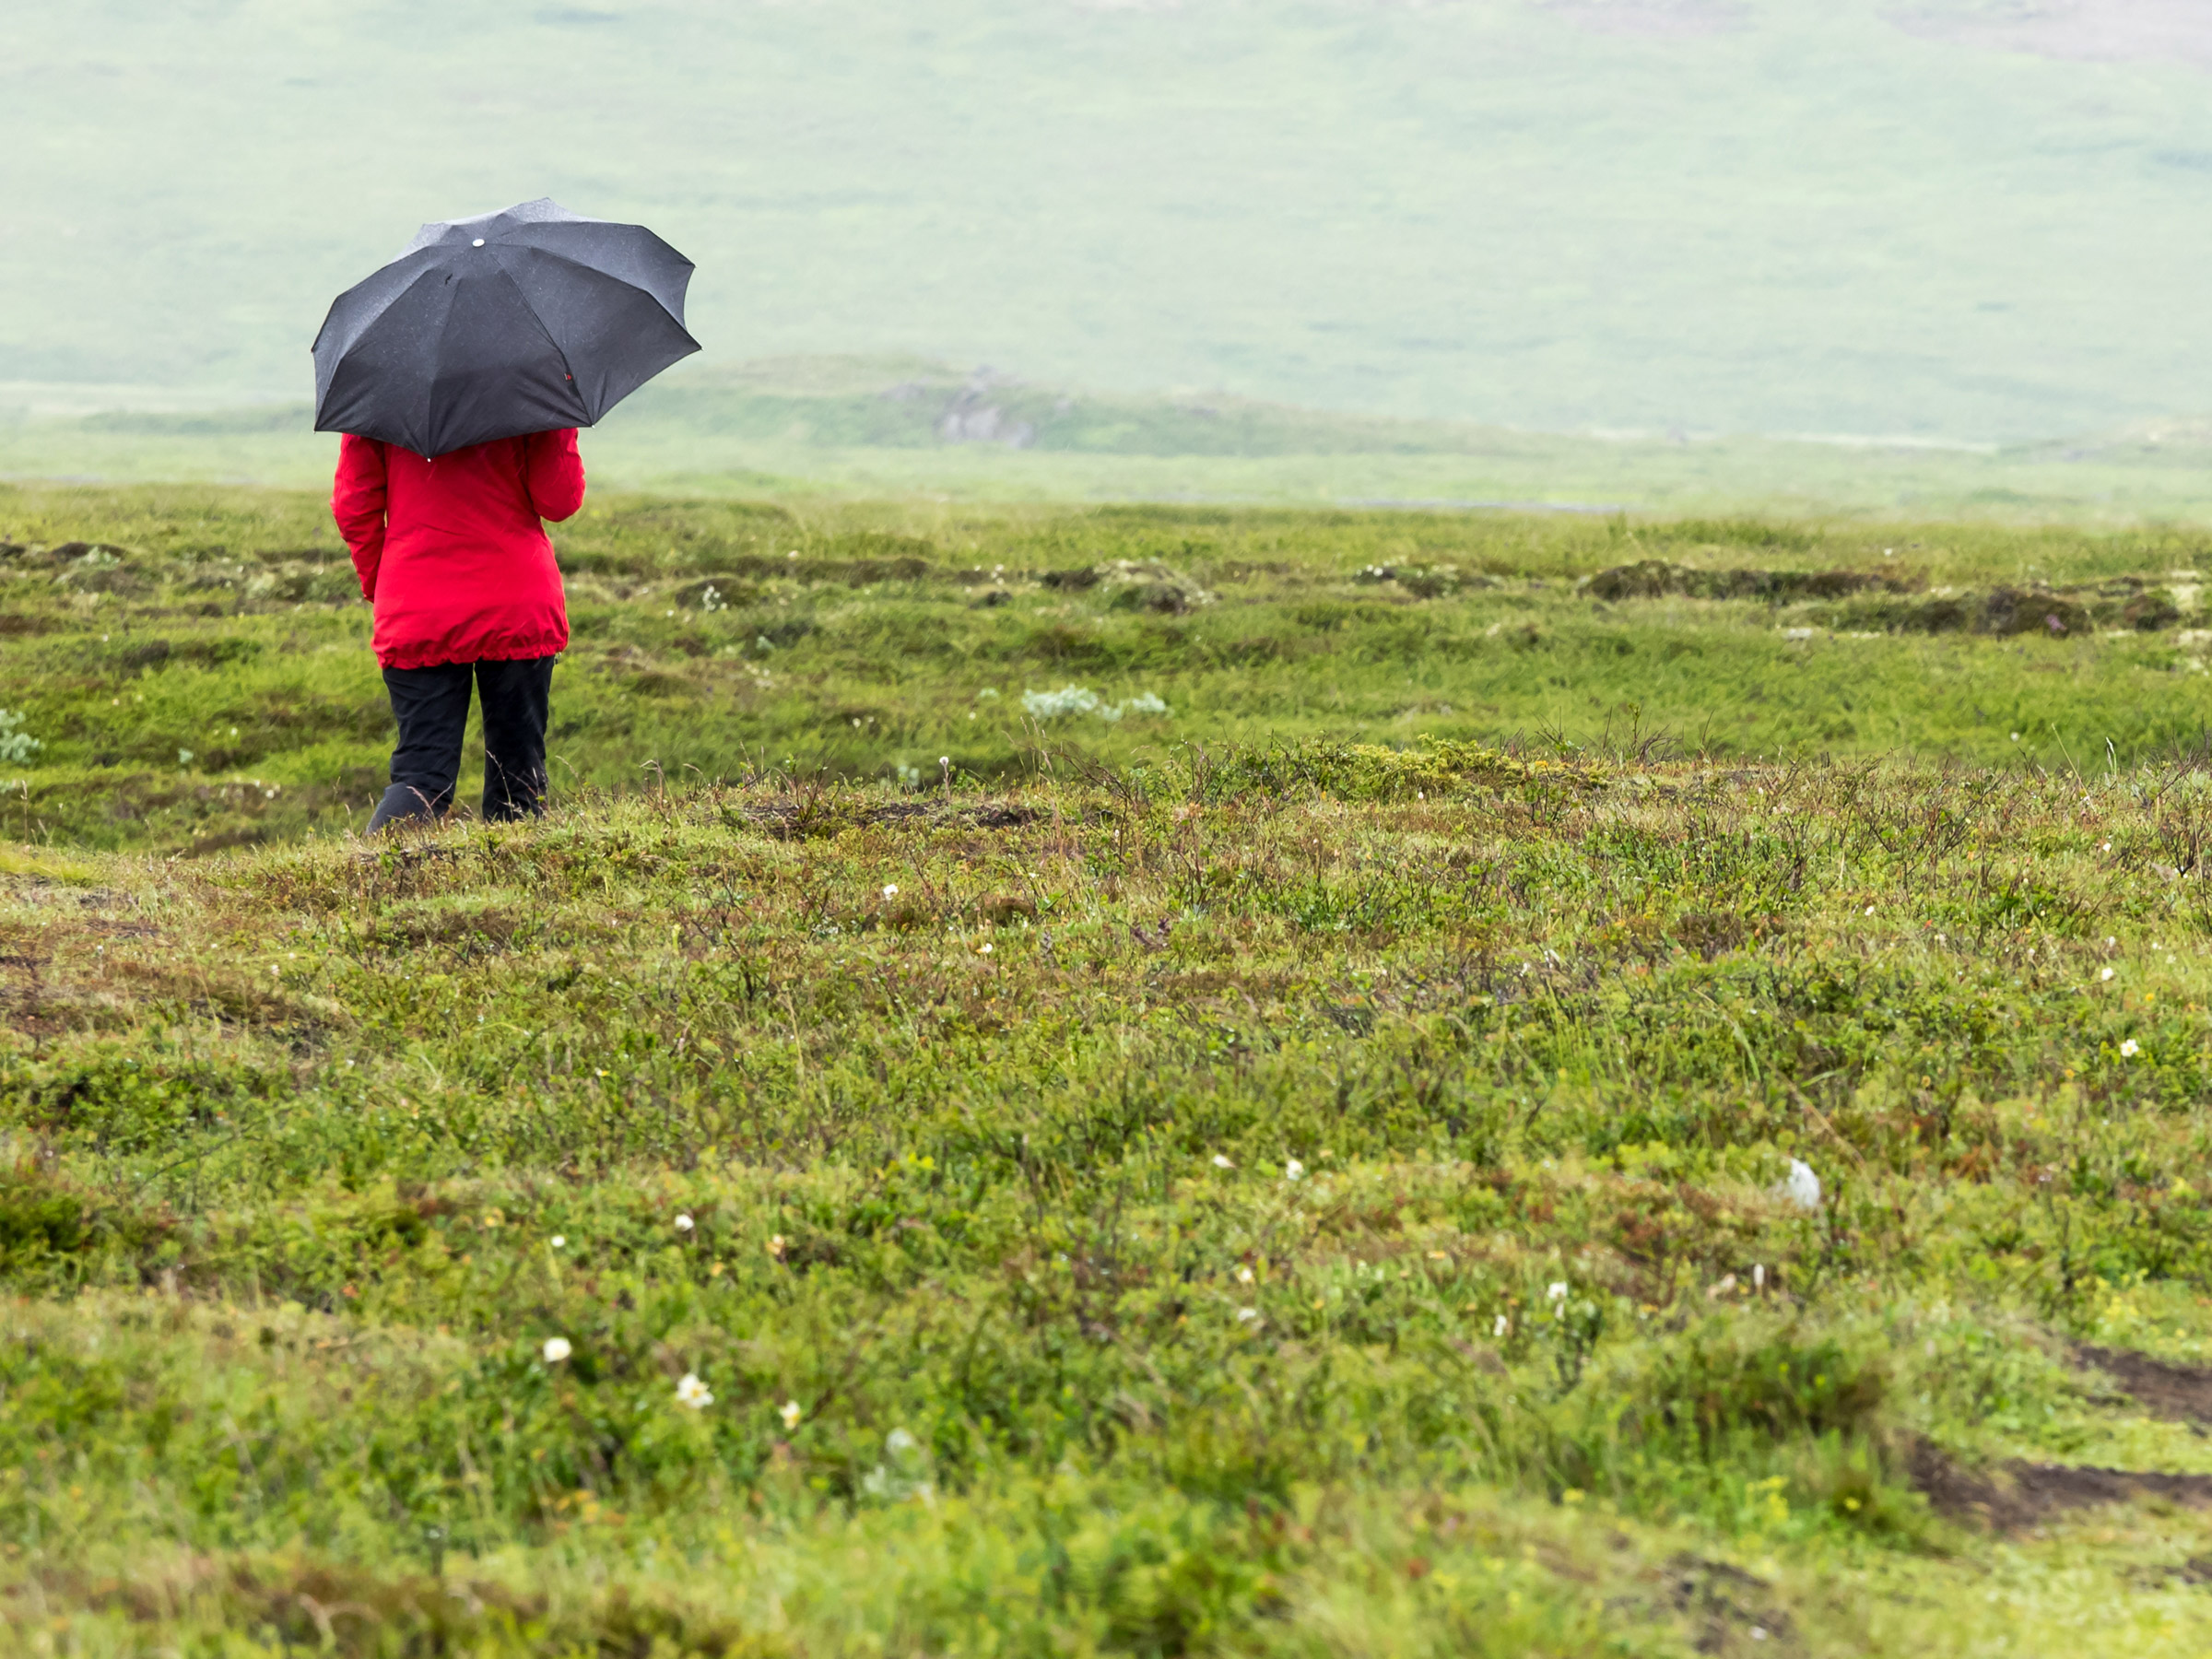 woman with umbrella in a field in Iceland